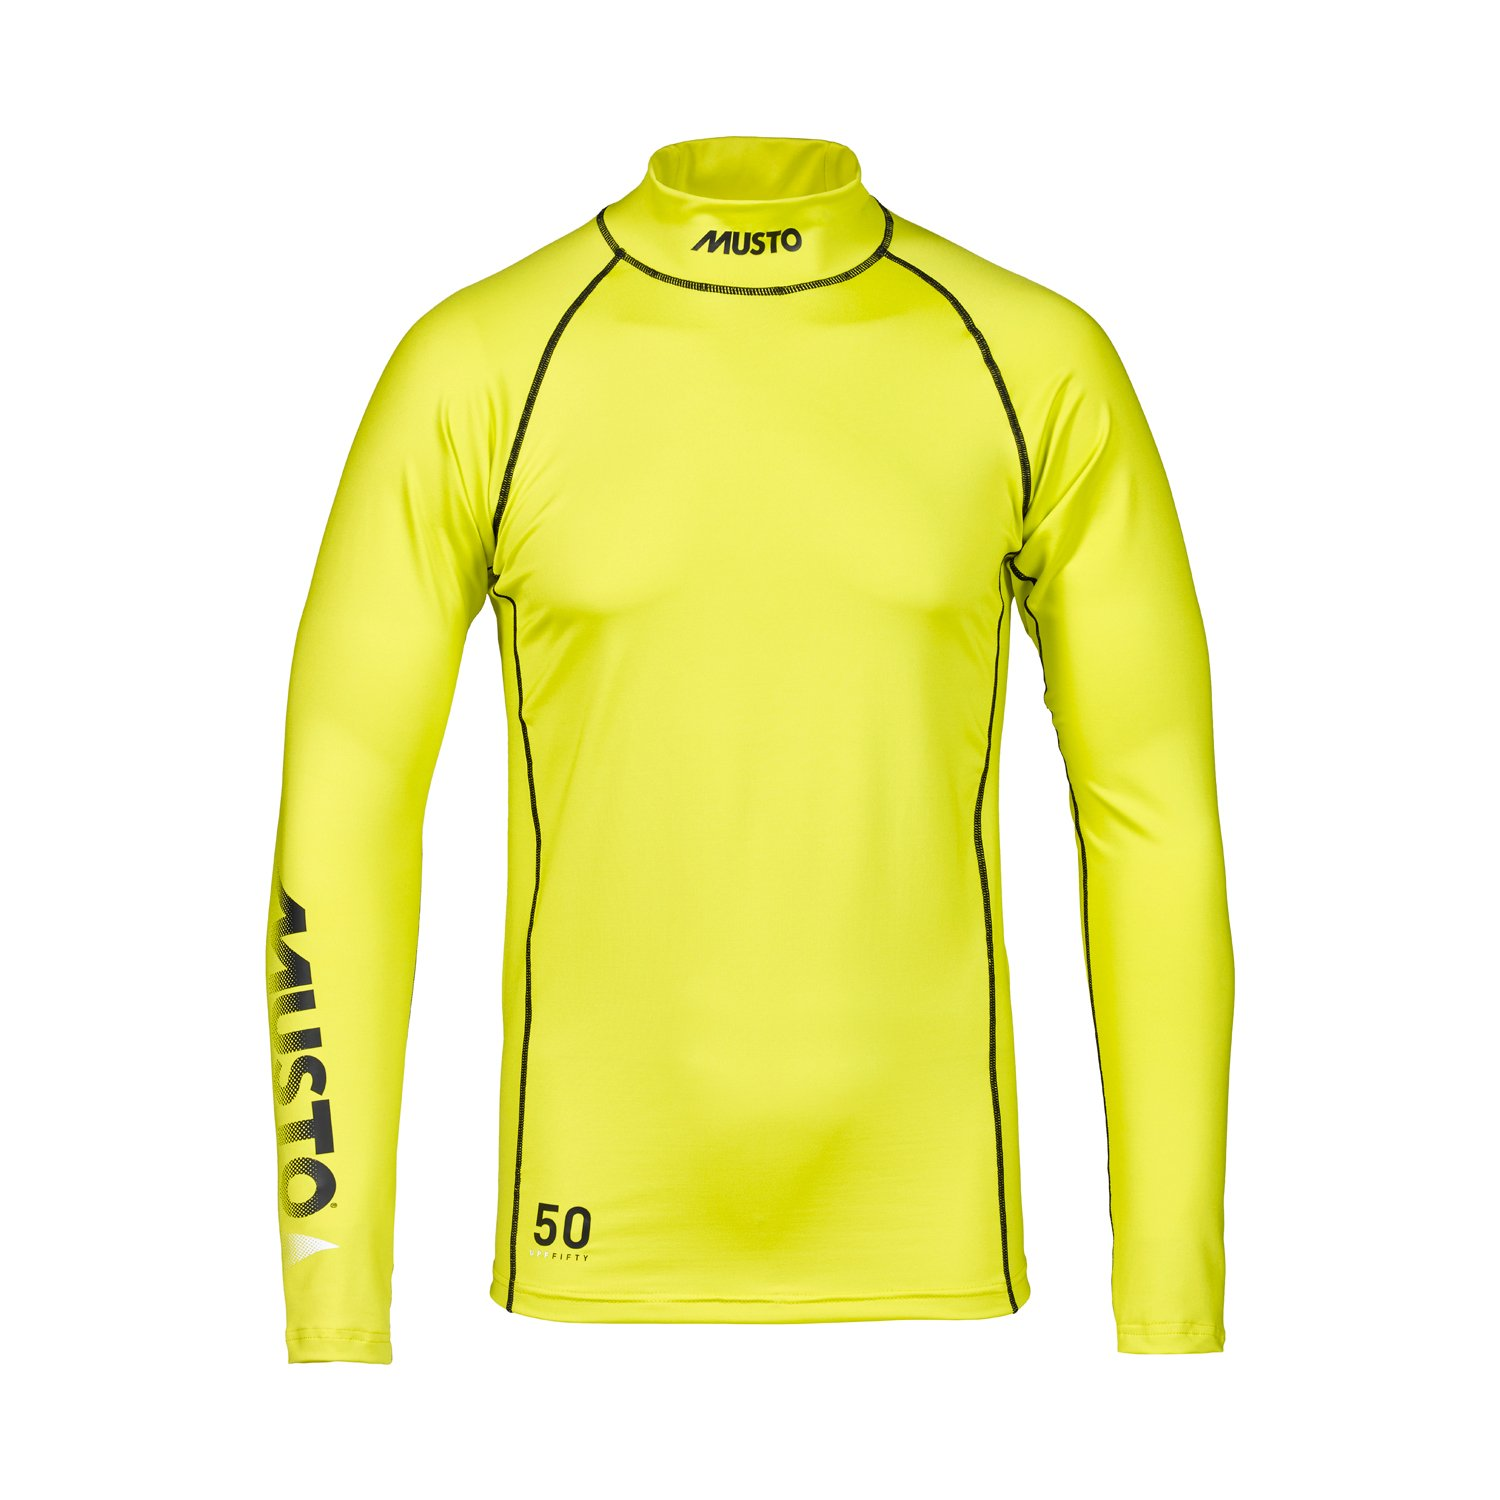 Musto Sunblock Long Sleeve Rash Guard 2017 - Sulphur Spring